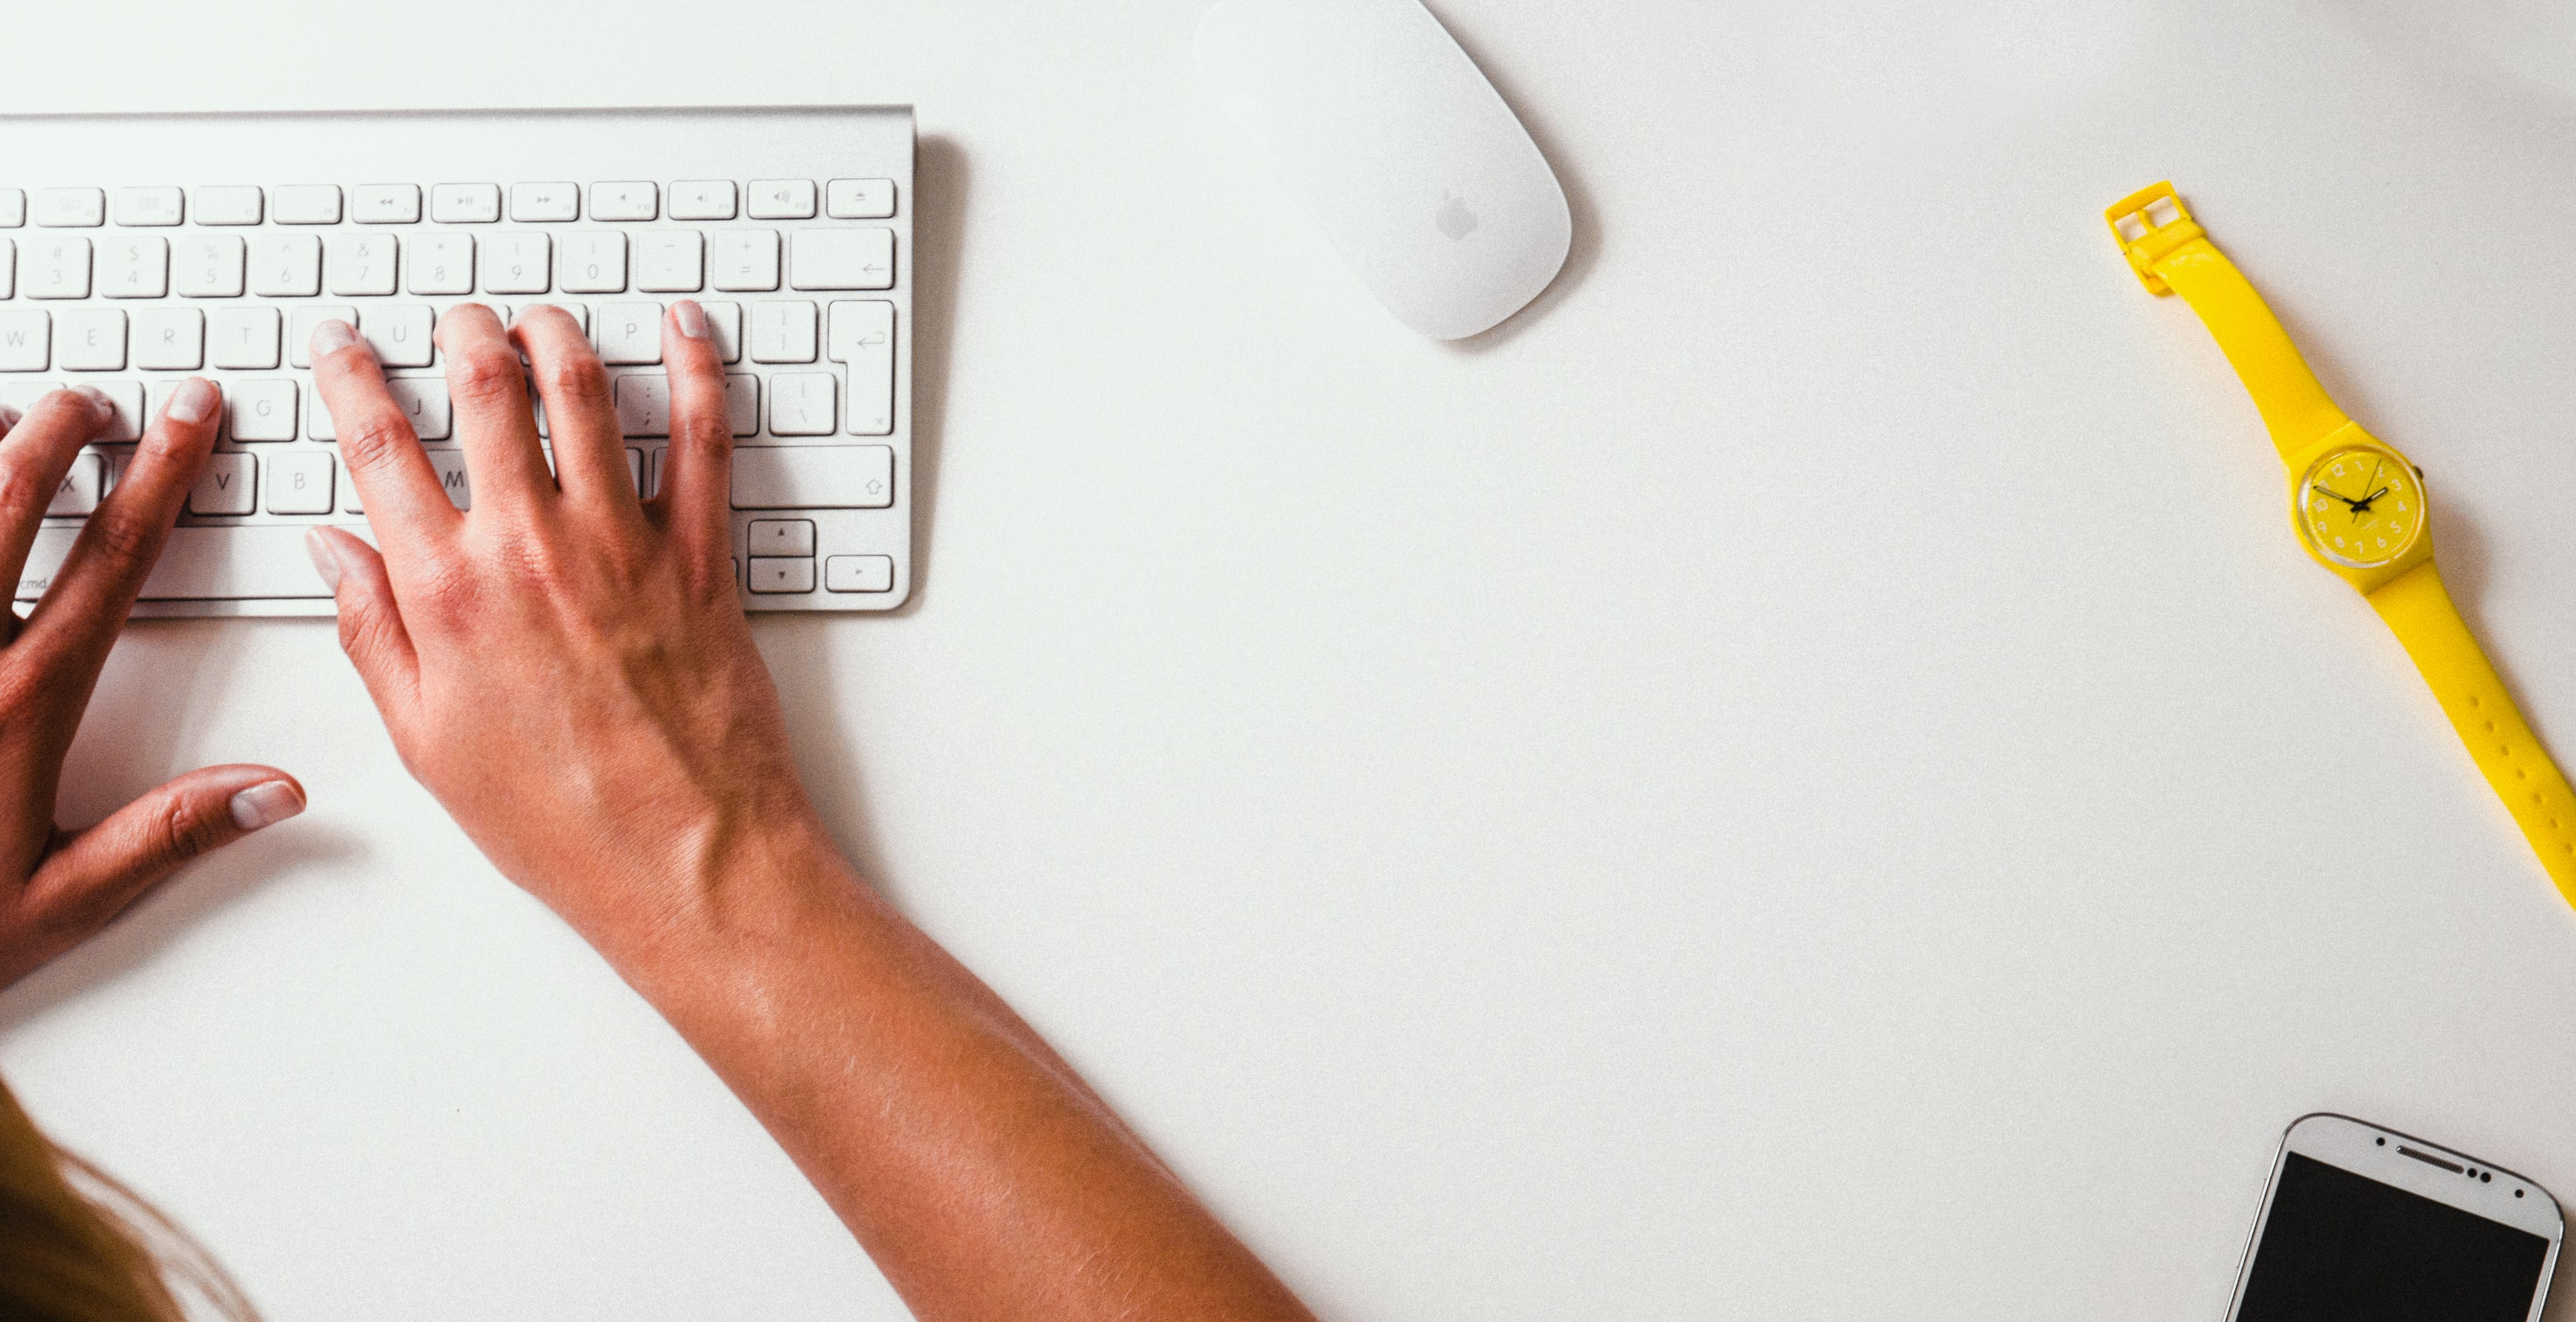 5 Tips for Therapists Working Online in Response to Covid-19